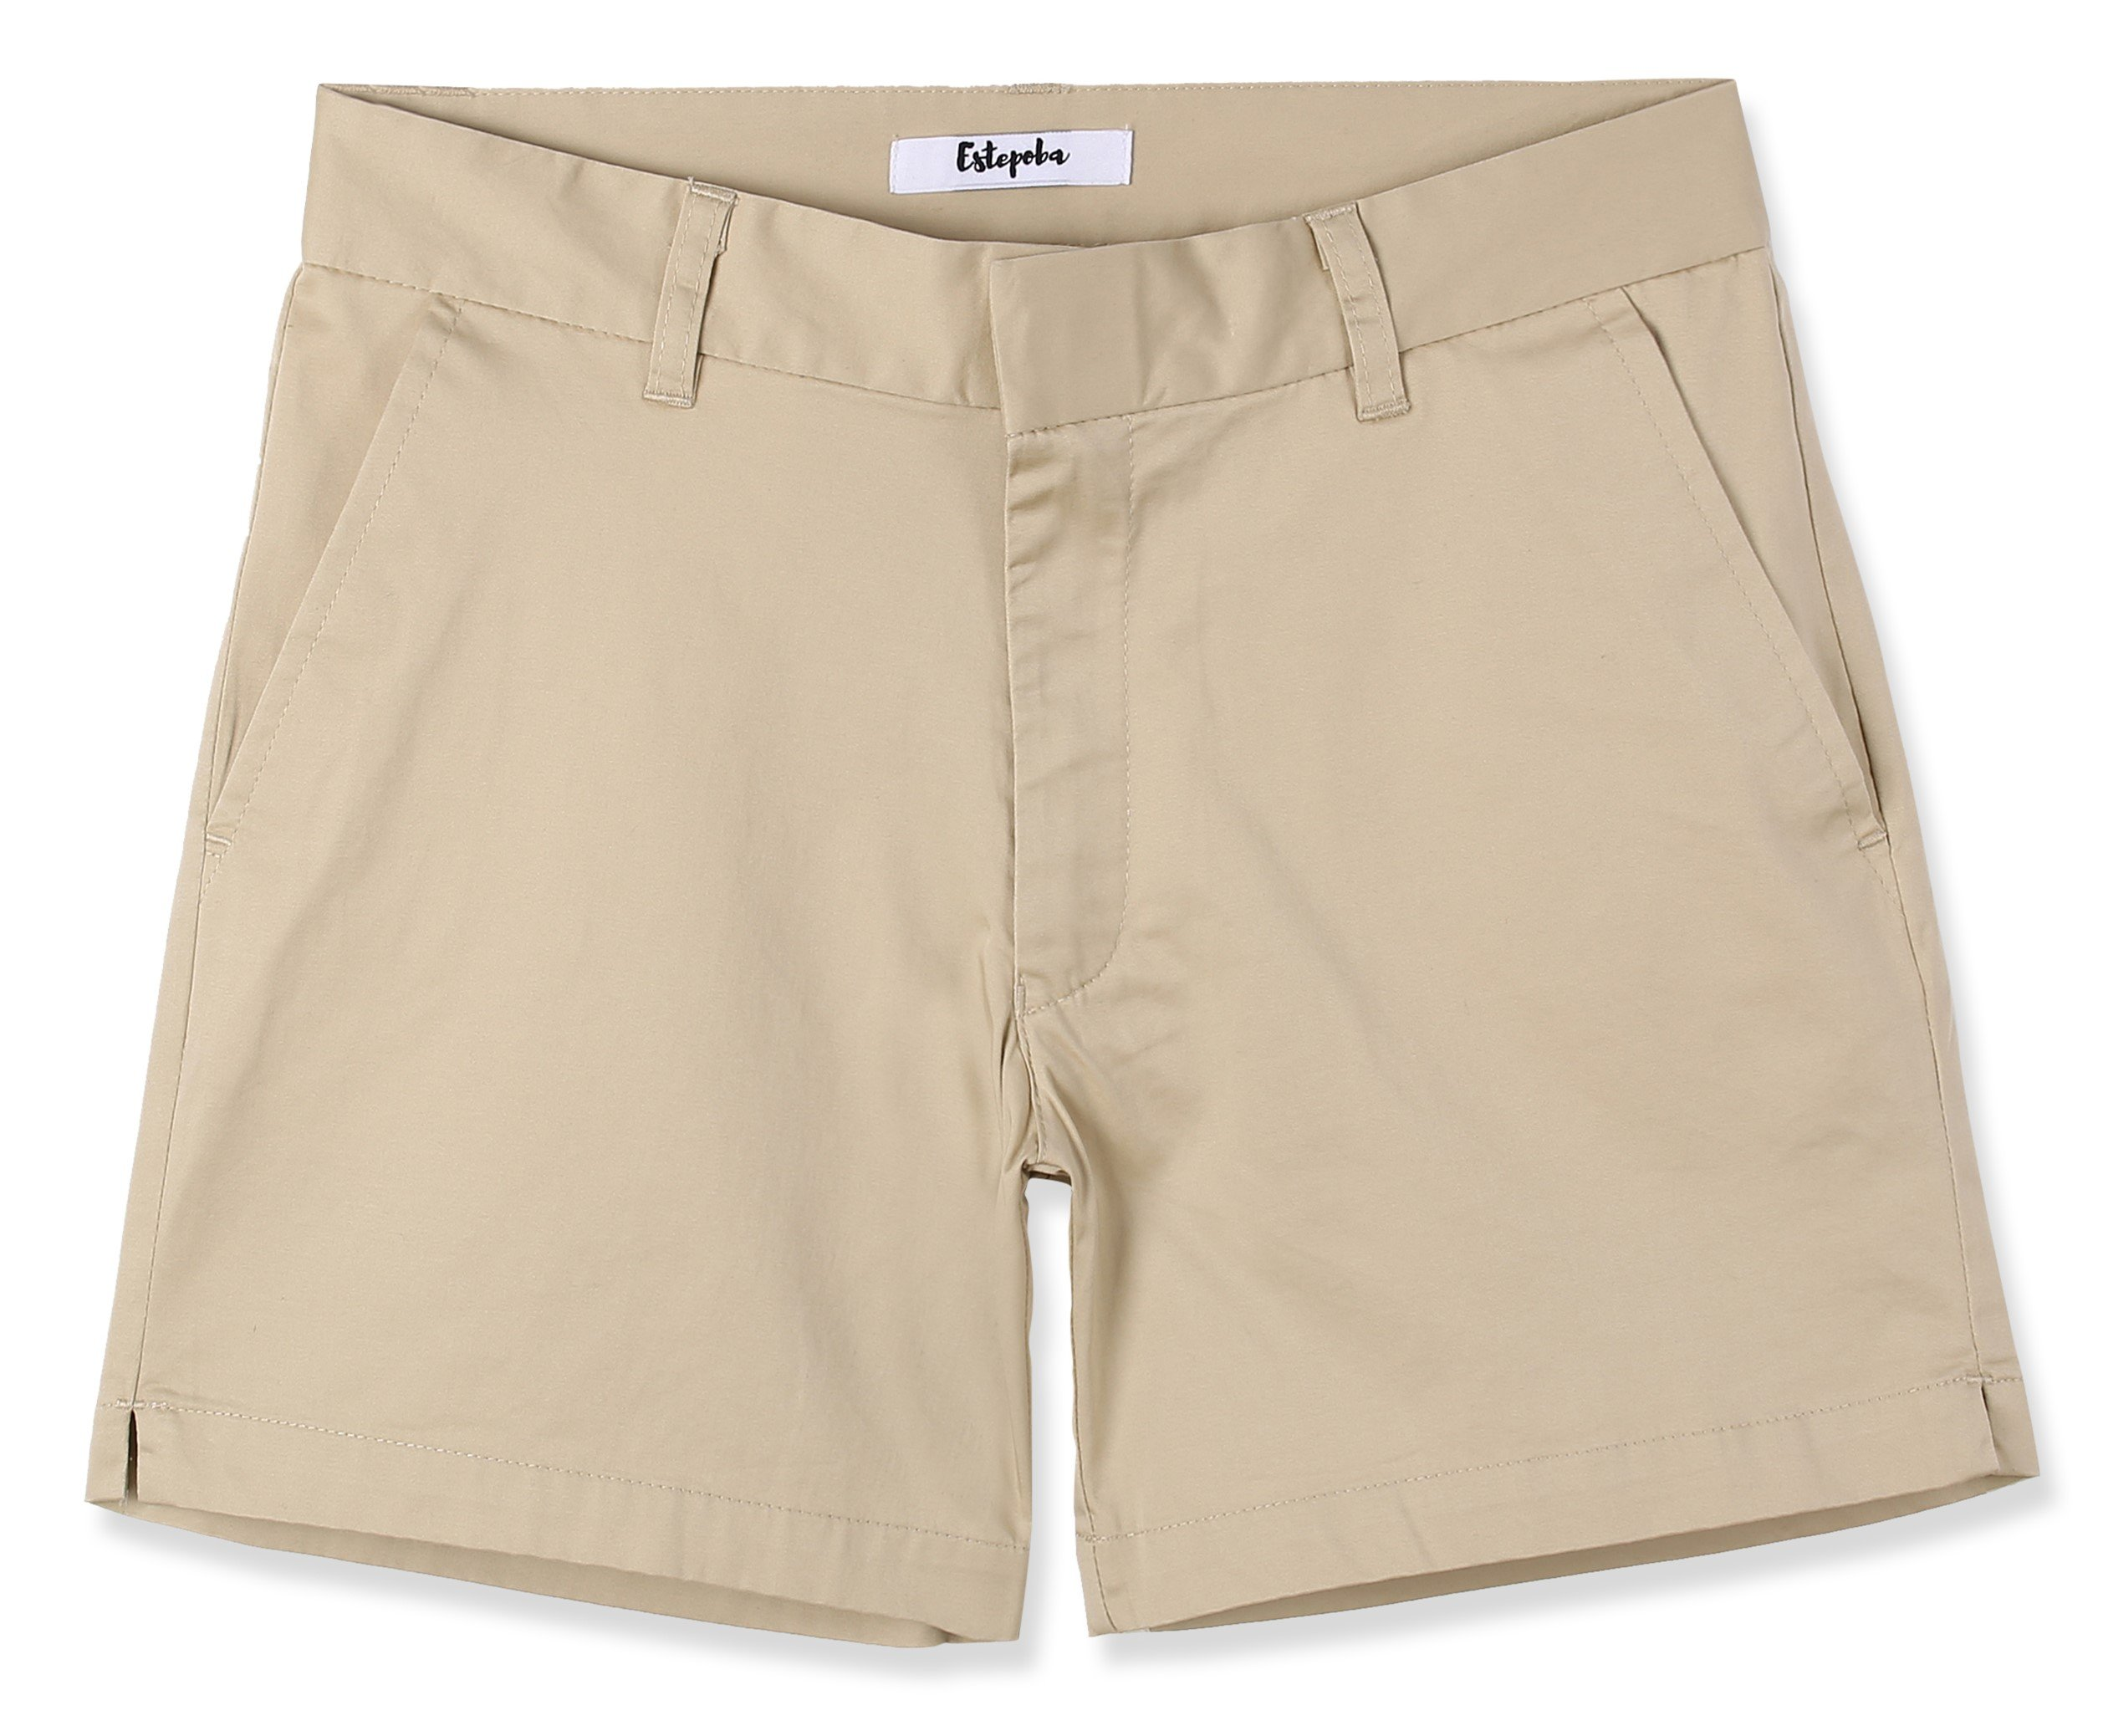 Estepoba Women's Juniors Premium Comfy Stretch Fitted Mid-Rise Chino Walk Short Light Khaki 29